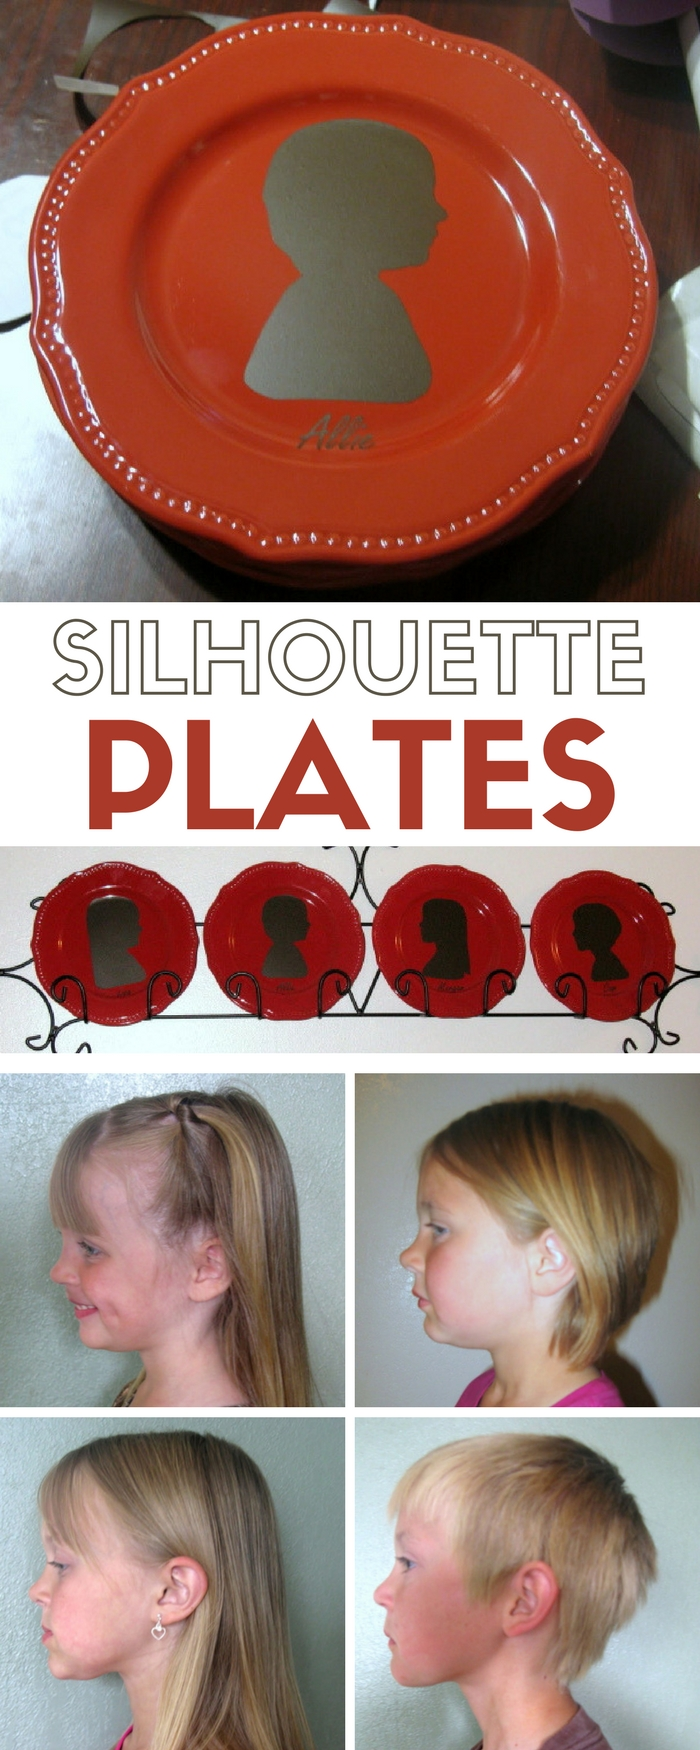 Silhouette Plates | Home Decor | Family Craft Ideas | Vinyl